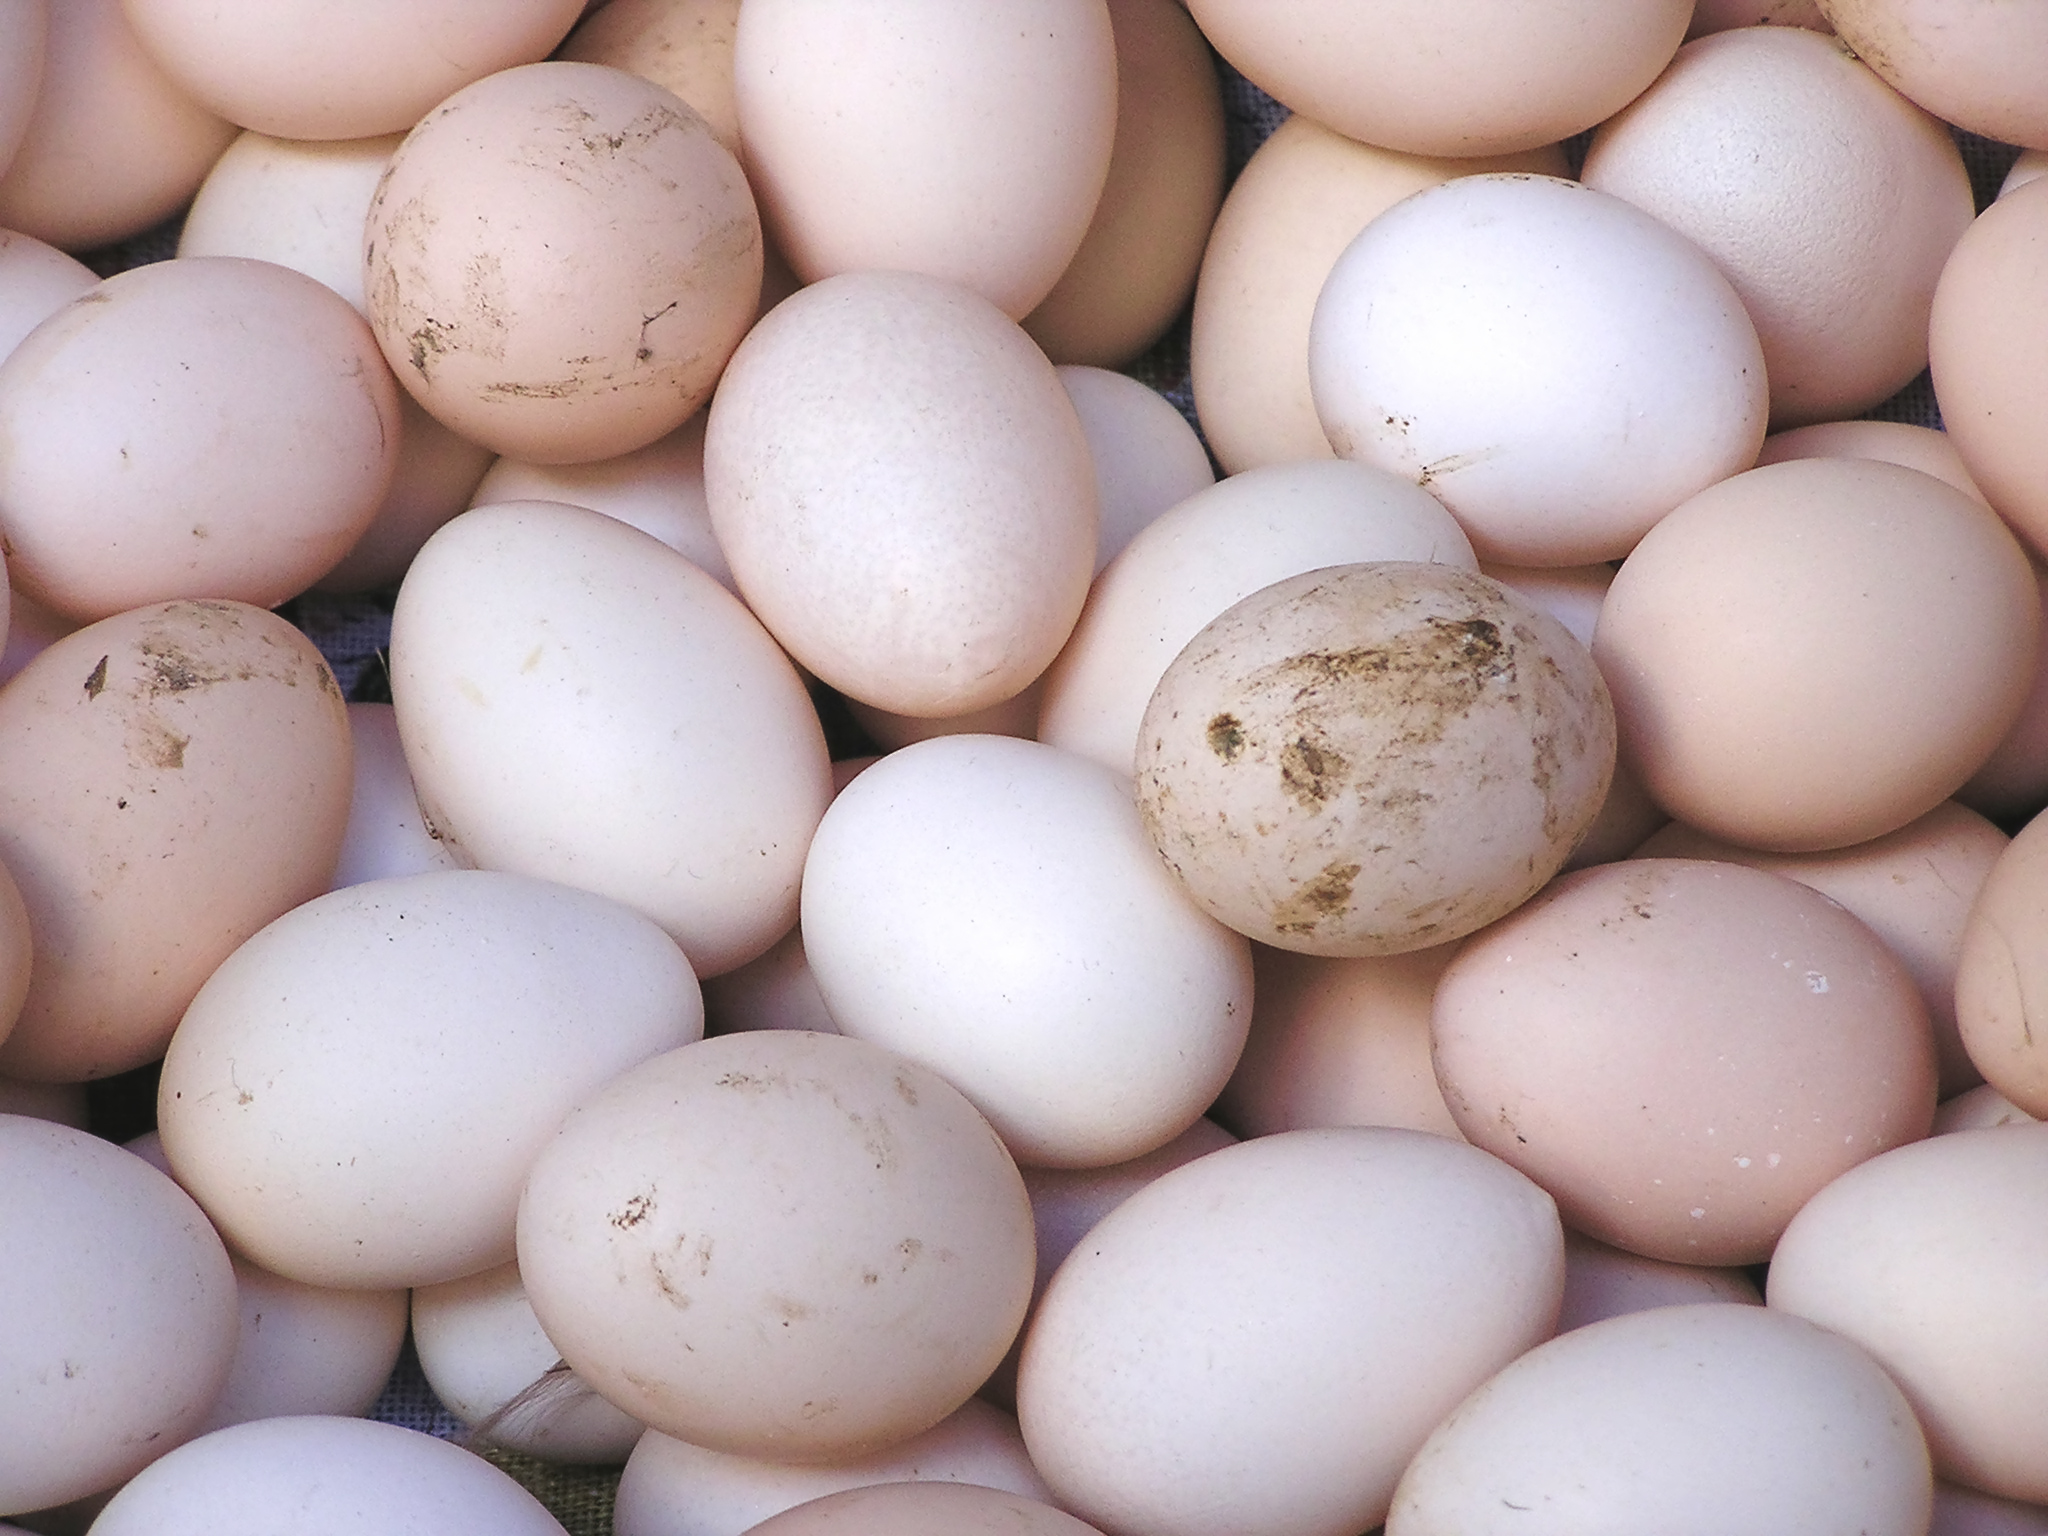 The Truth About Eating Raw Eggs 8